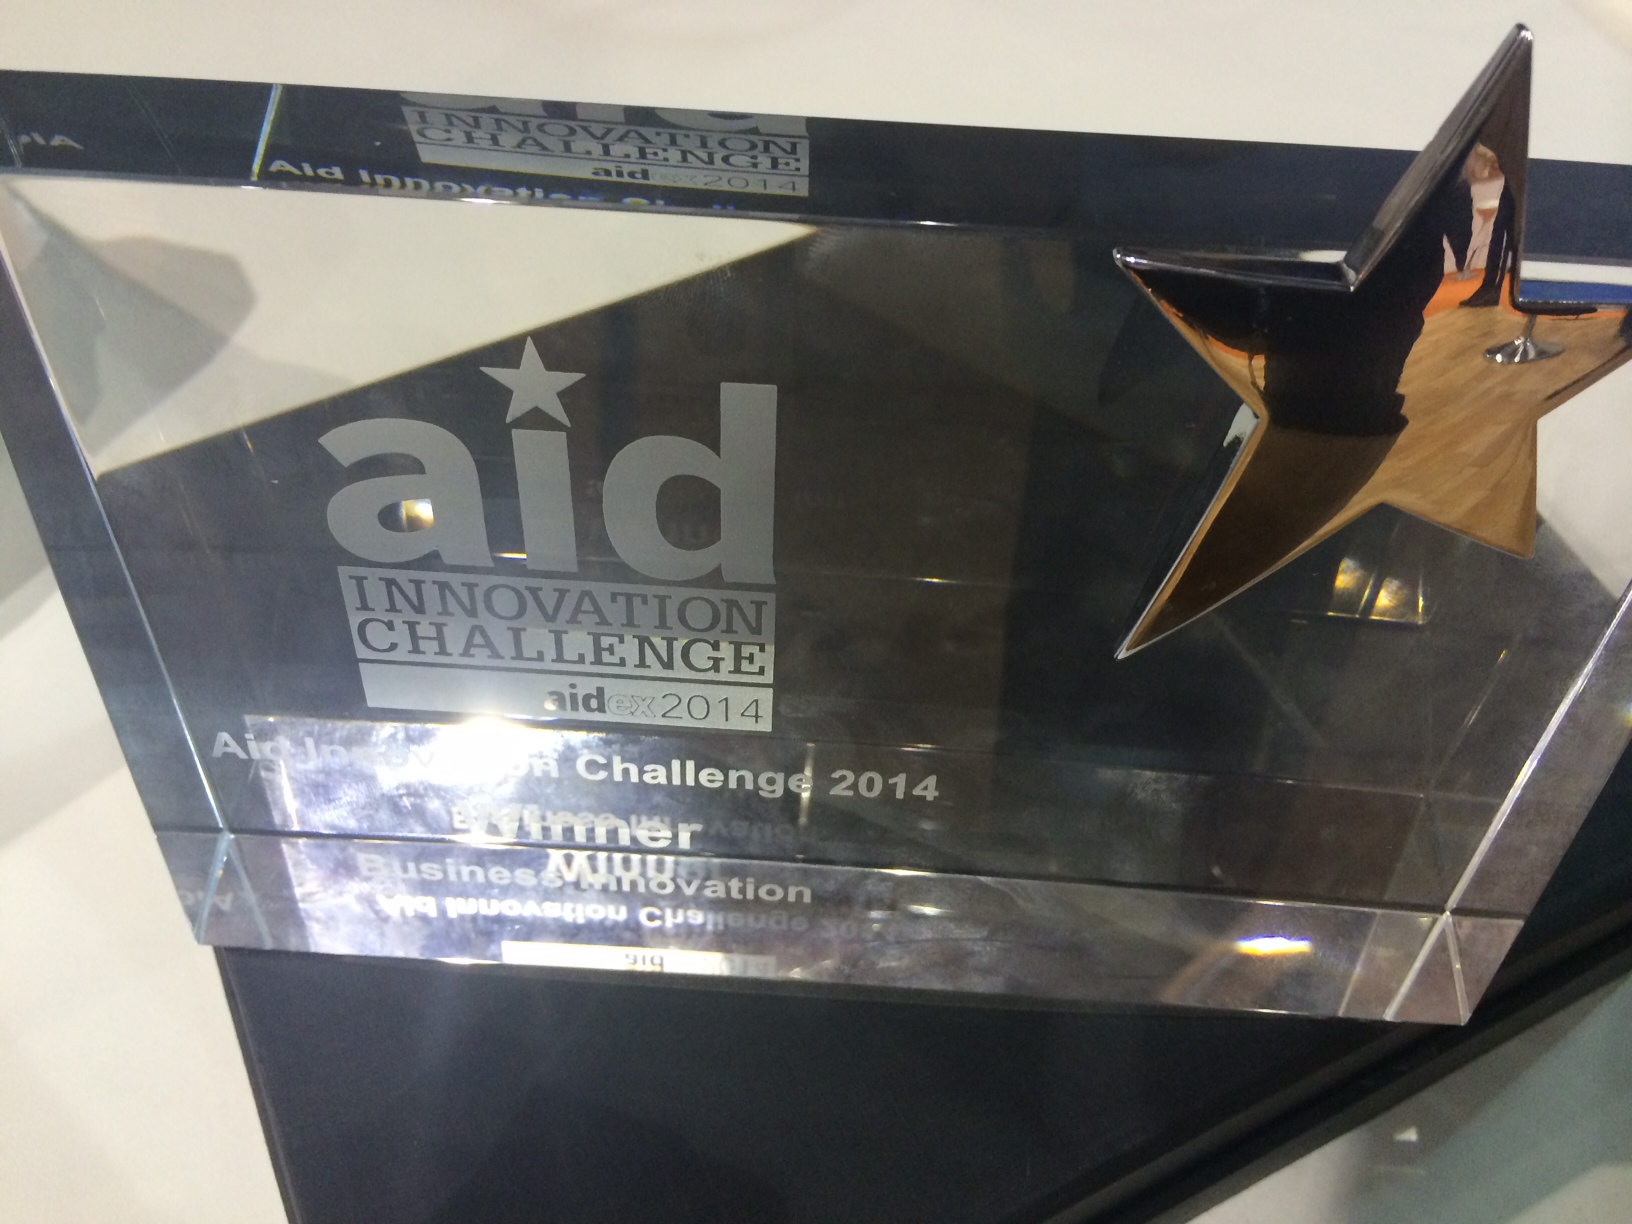 NRS Relief chosen as finalist for AidEx Aid Innovation Challenge